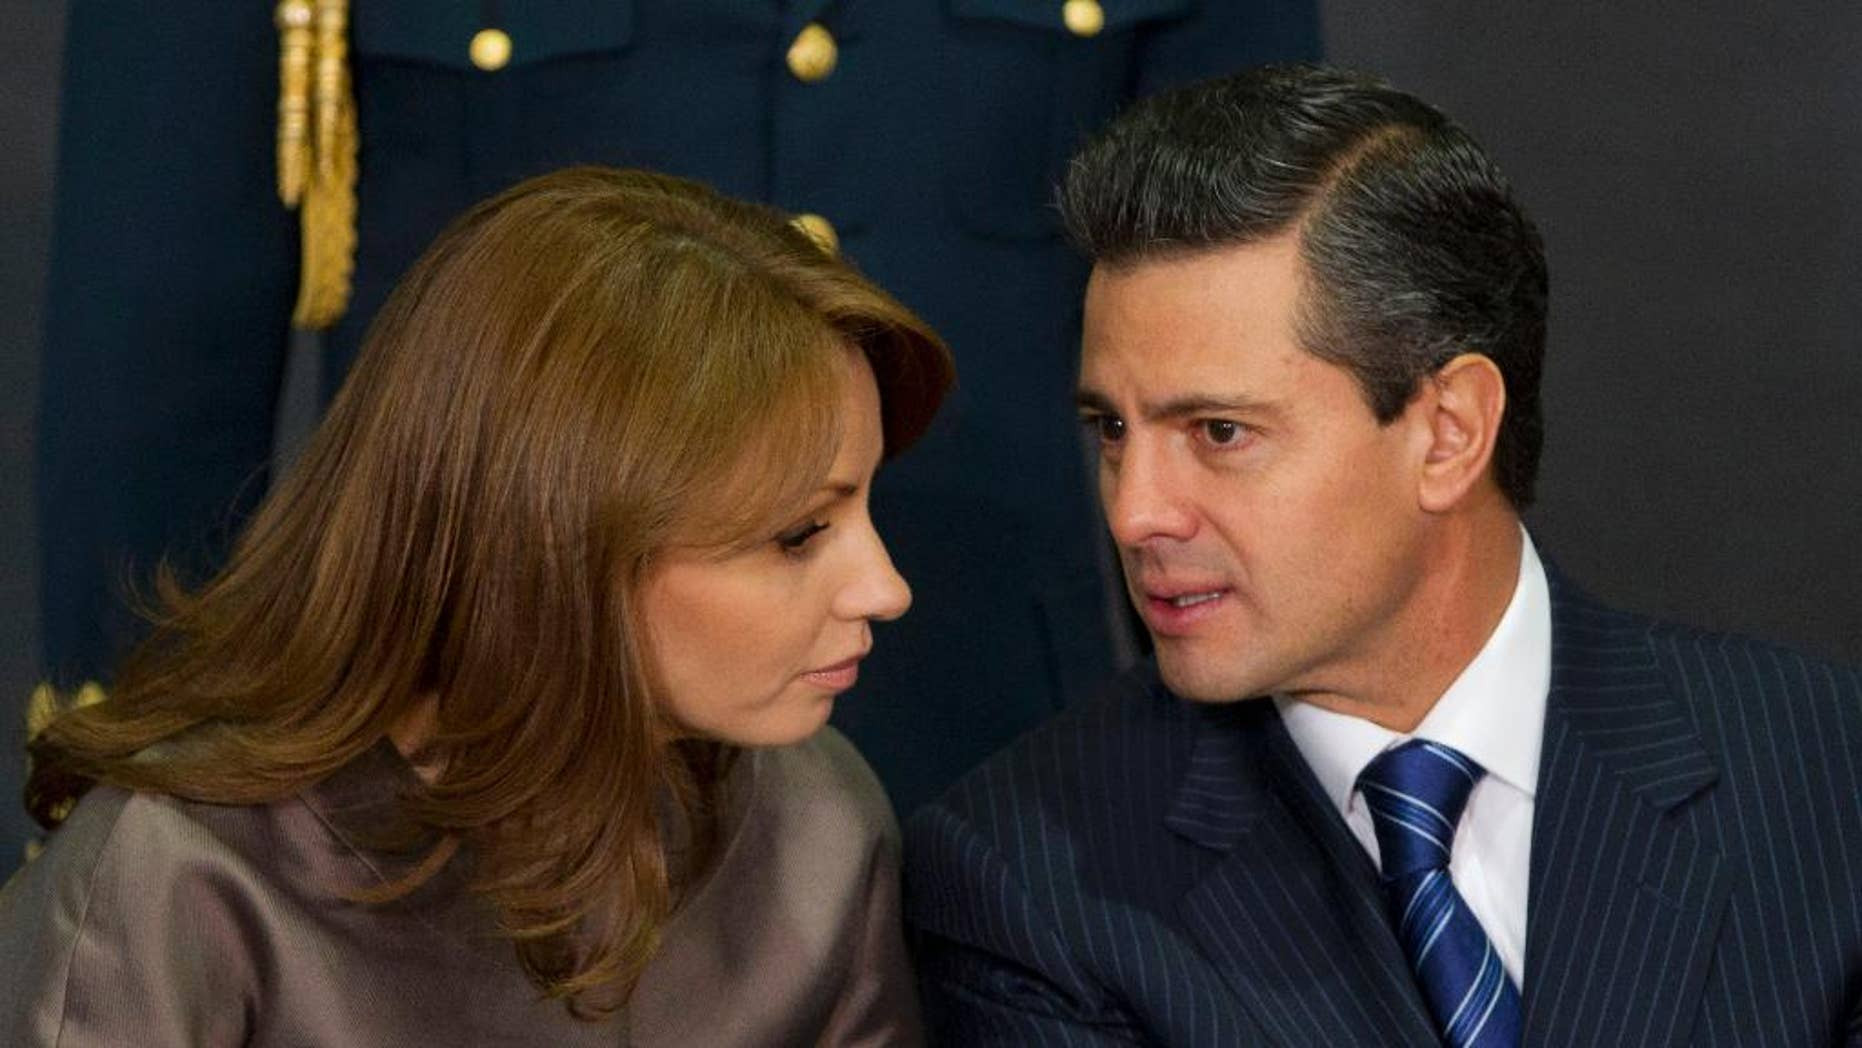 """March 13, 2013: In this file photo, Mexico's President Enrique Pena Nieto, right, speaks to his wife Angelica Rivera as they attend a ceremony launching the program """"Life insurance for female heads of family"""" at Los Pinos presidential residence in Mexico City. (AP)"""